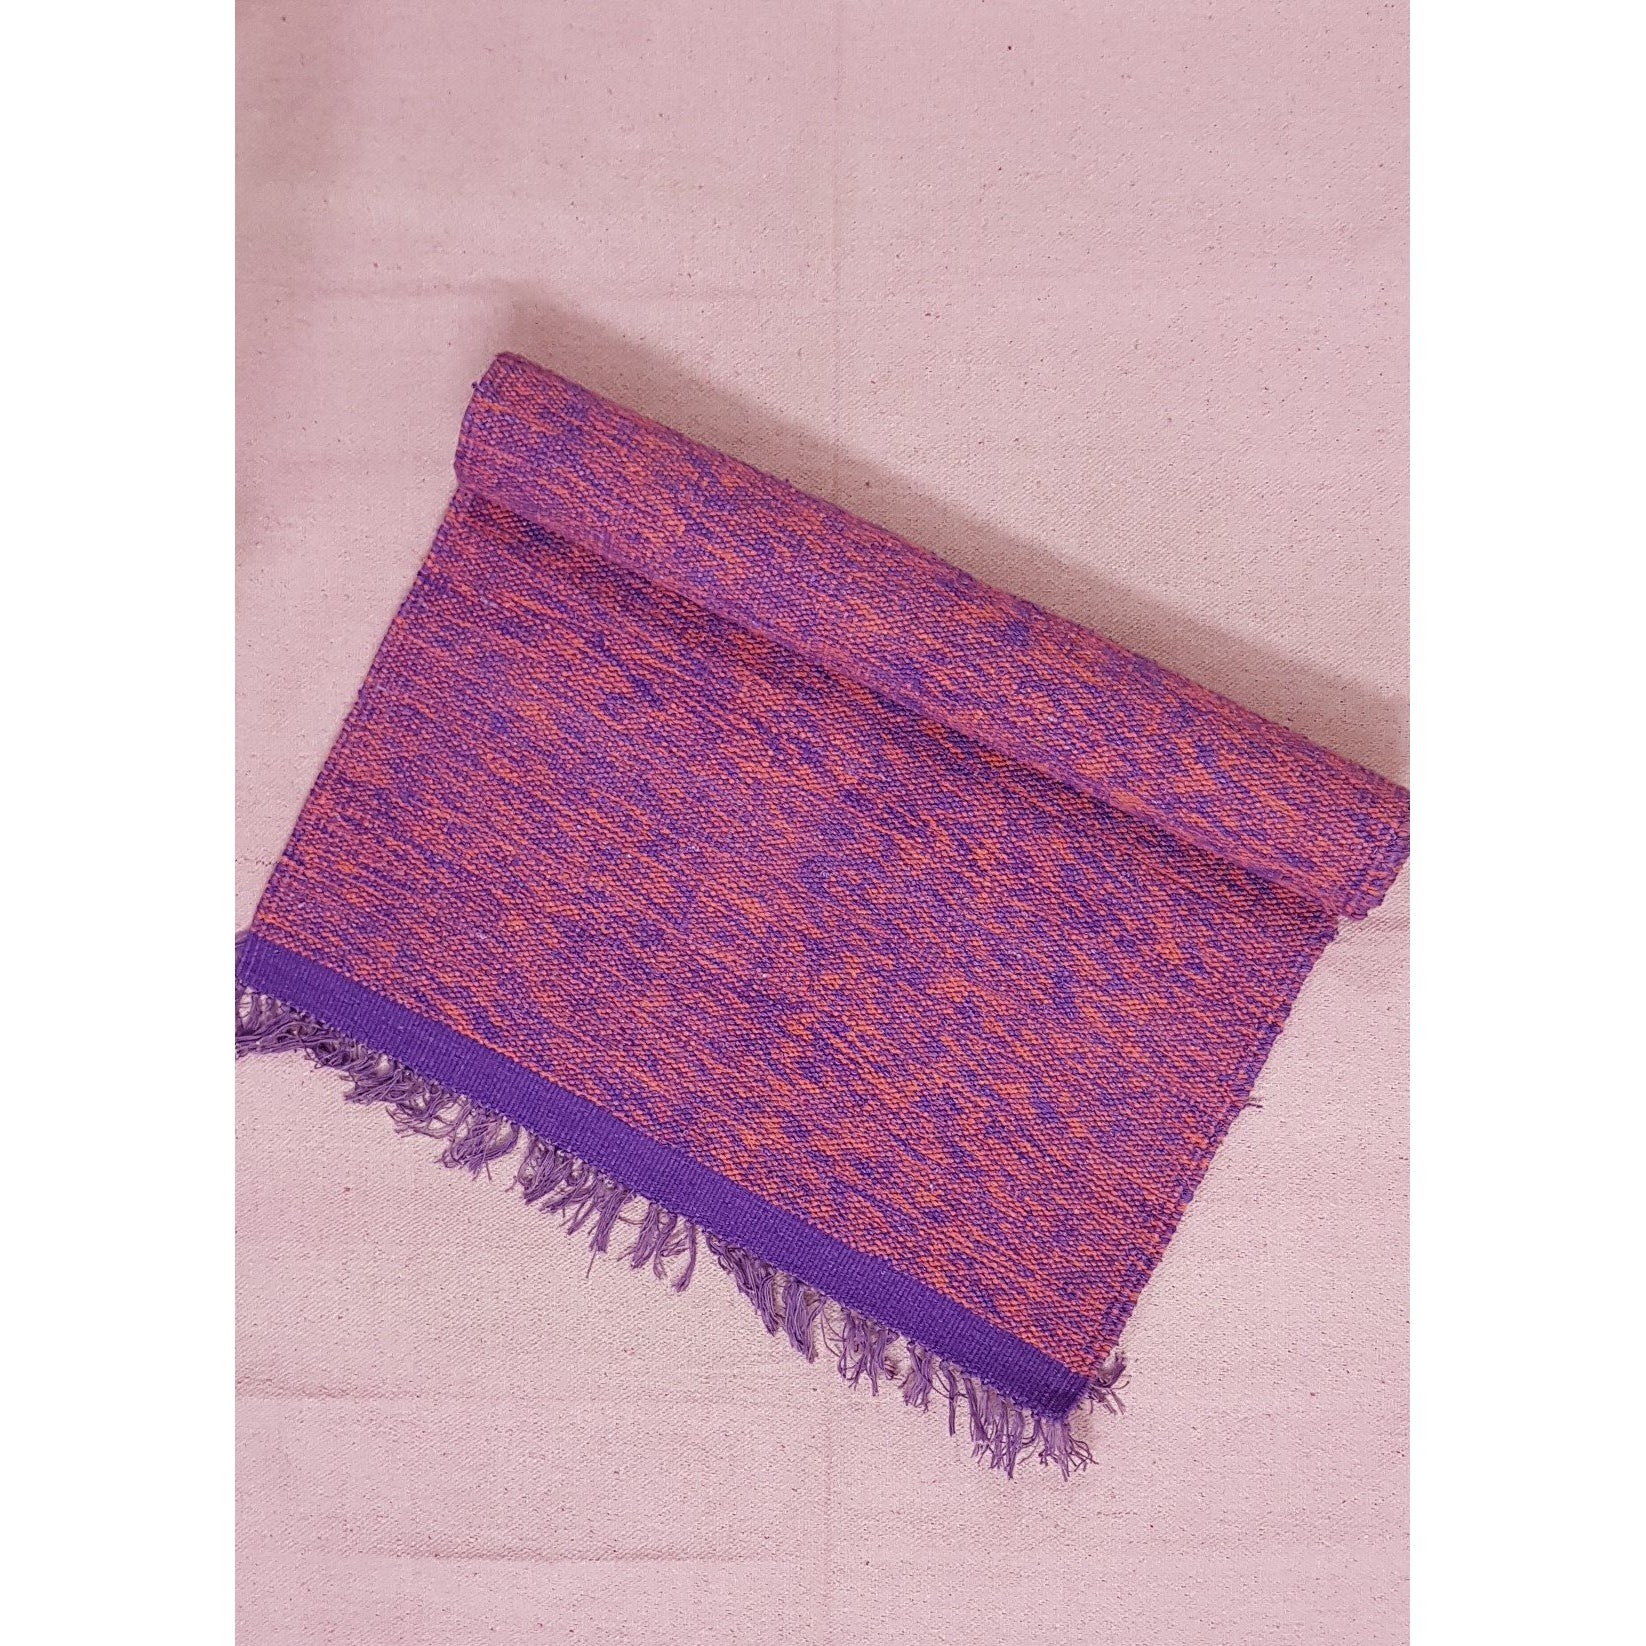 Purple and Pink Color Handwoven Yoga Mat – 2.4 ft X 6.5 ft - Vinshika